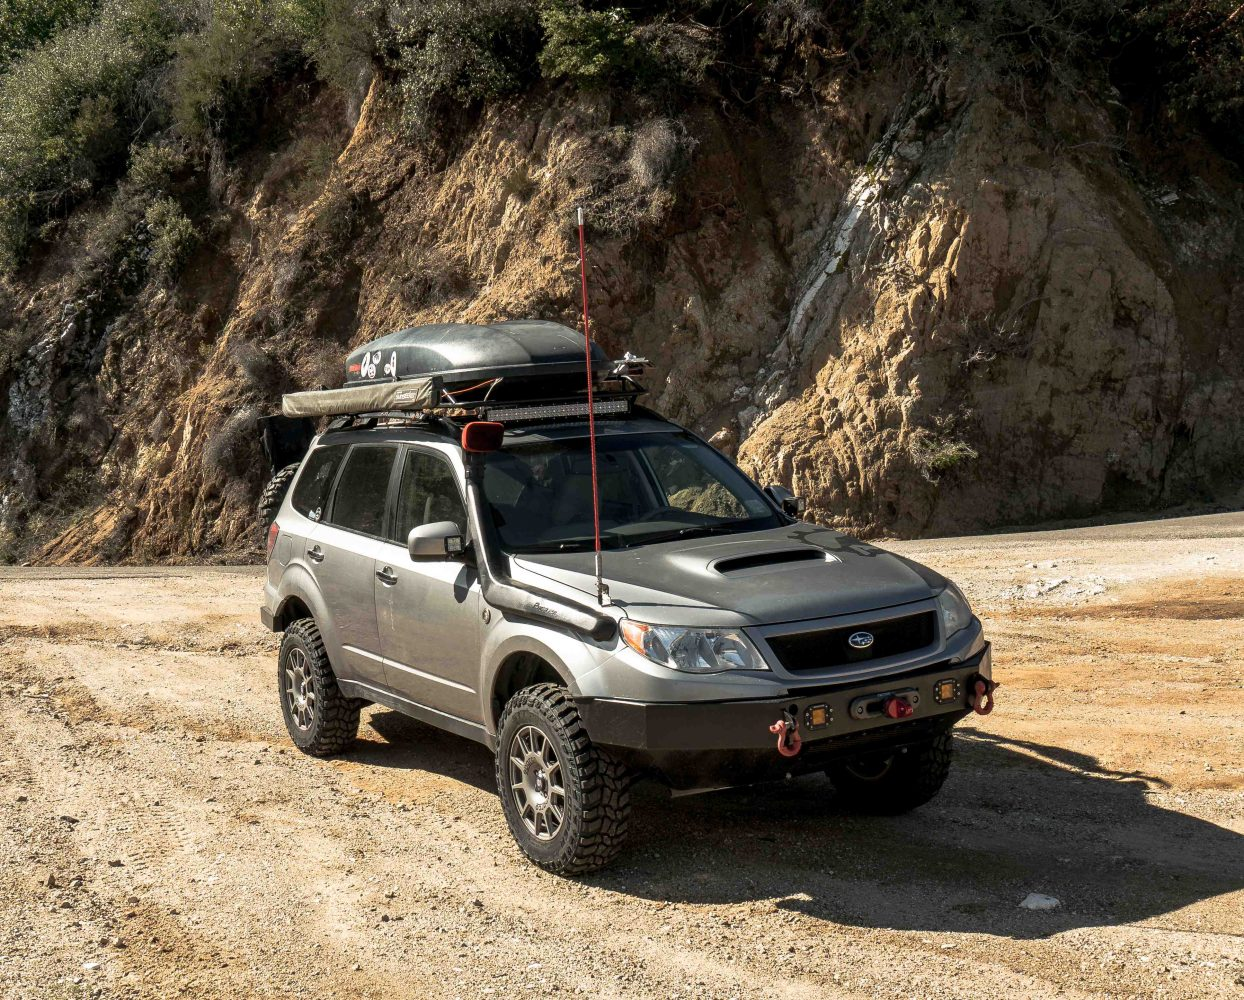 Featured Vehicle: FozRoamer's Subaru Forester – Expedition